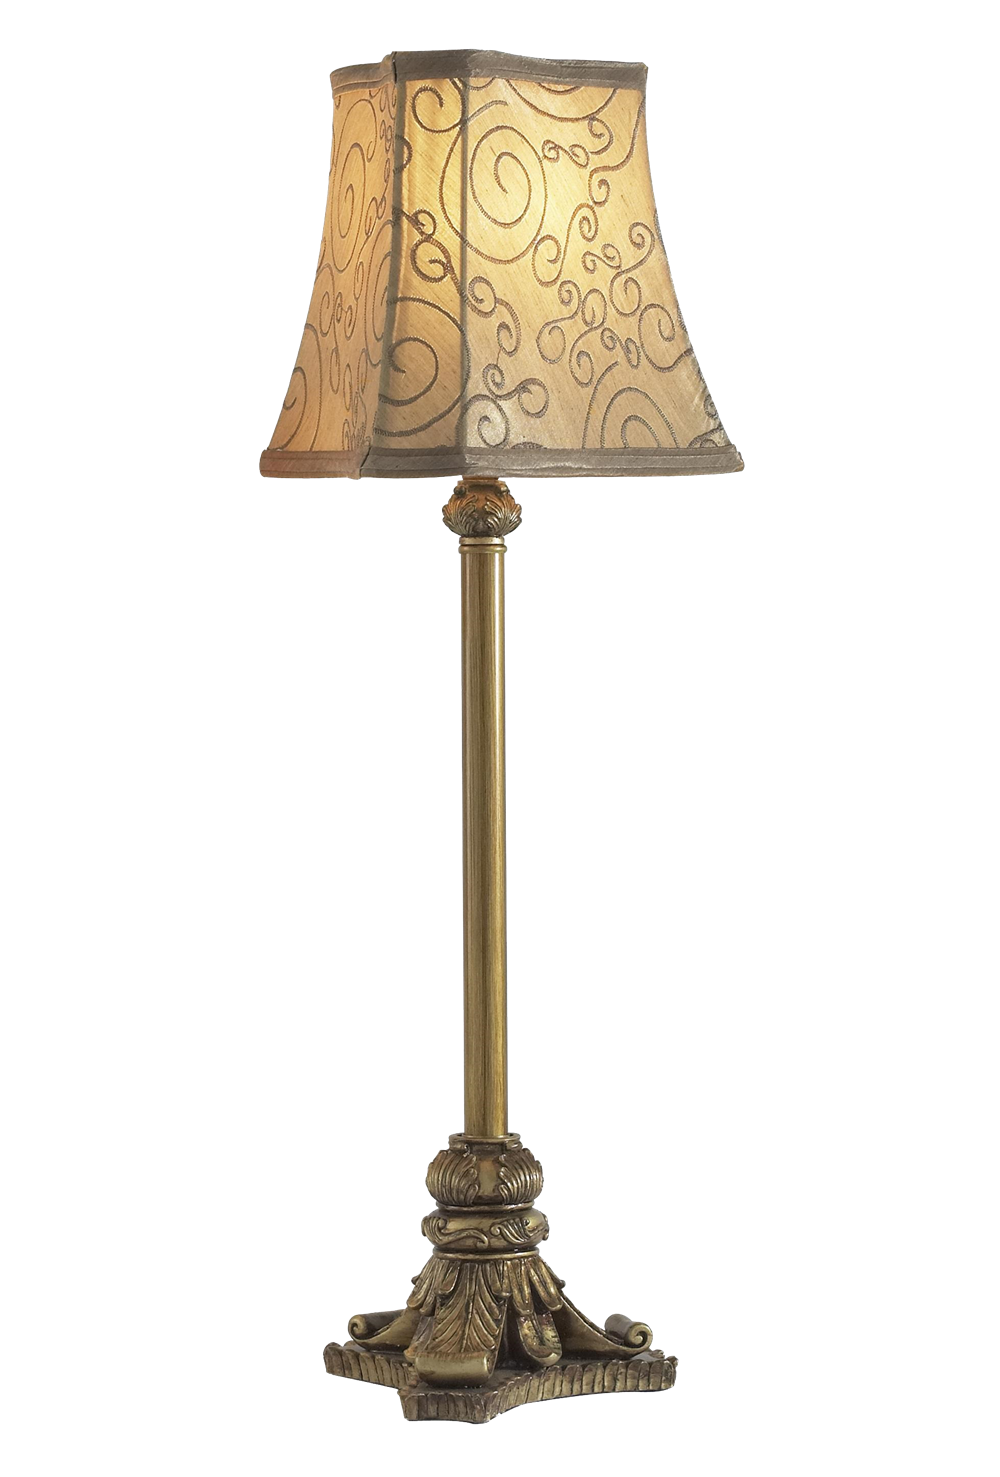 Desk lamp png. Transparent images all